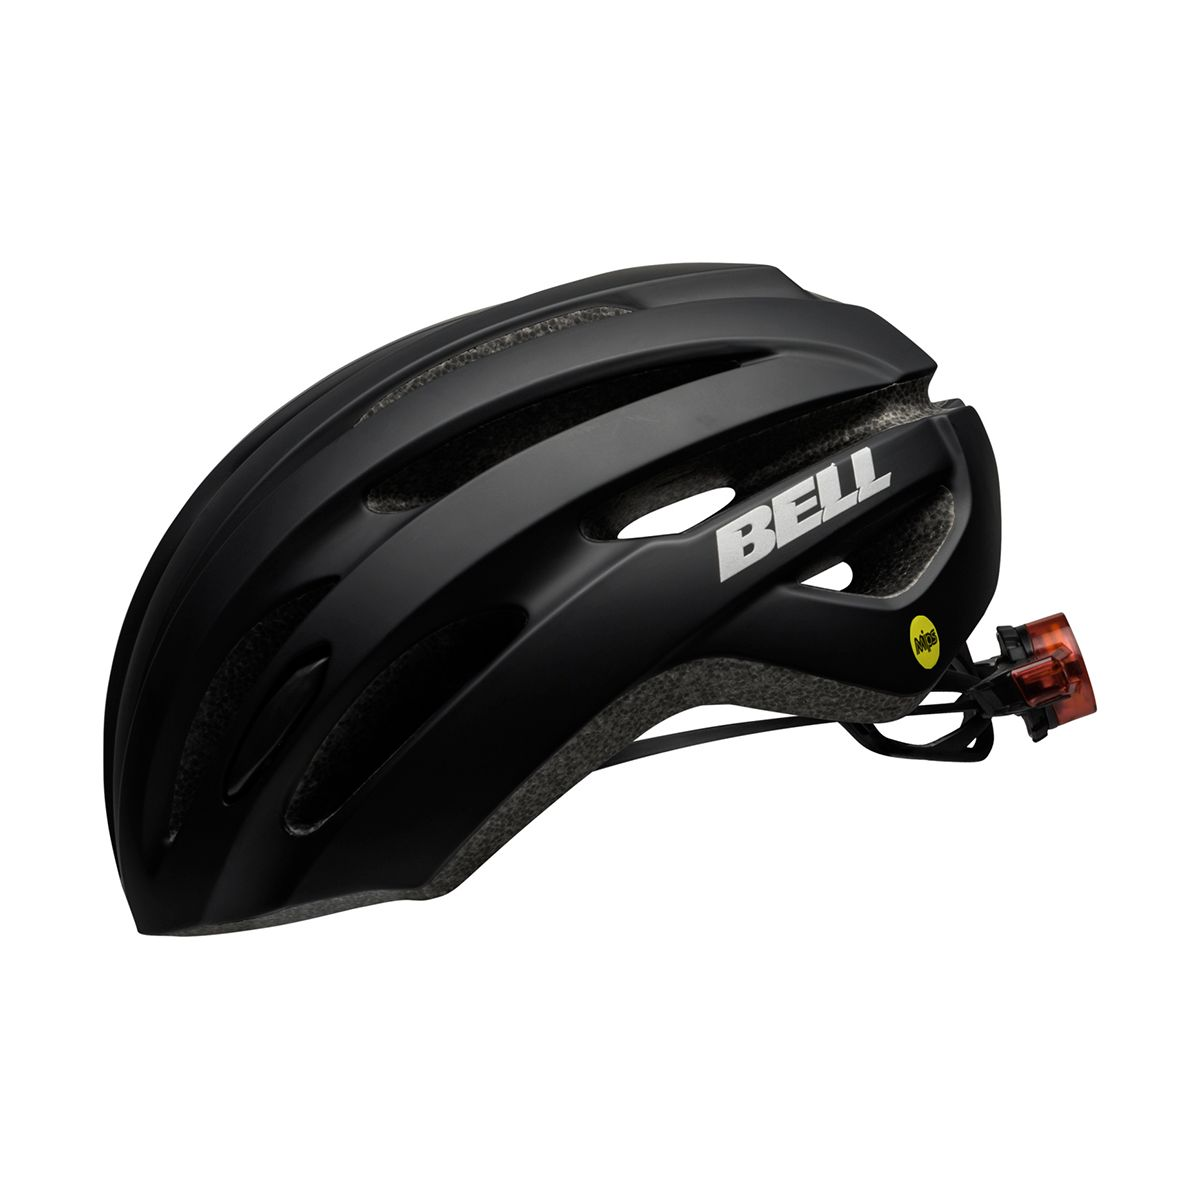 AVENUE LED MIPS Bike Helmet